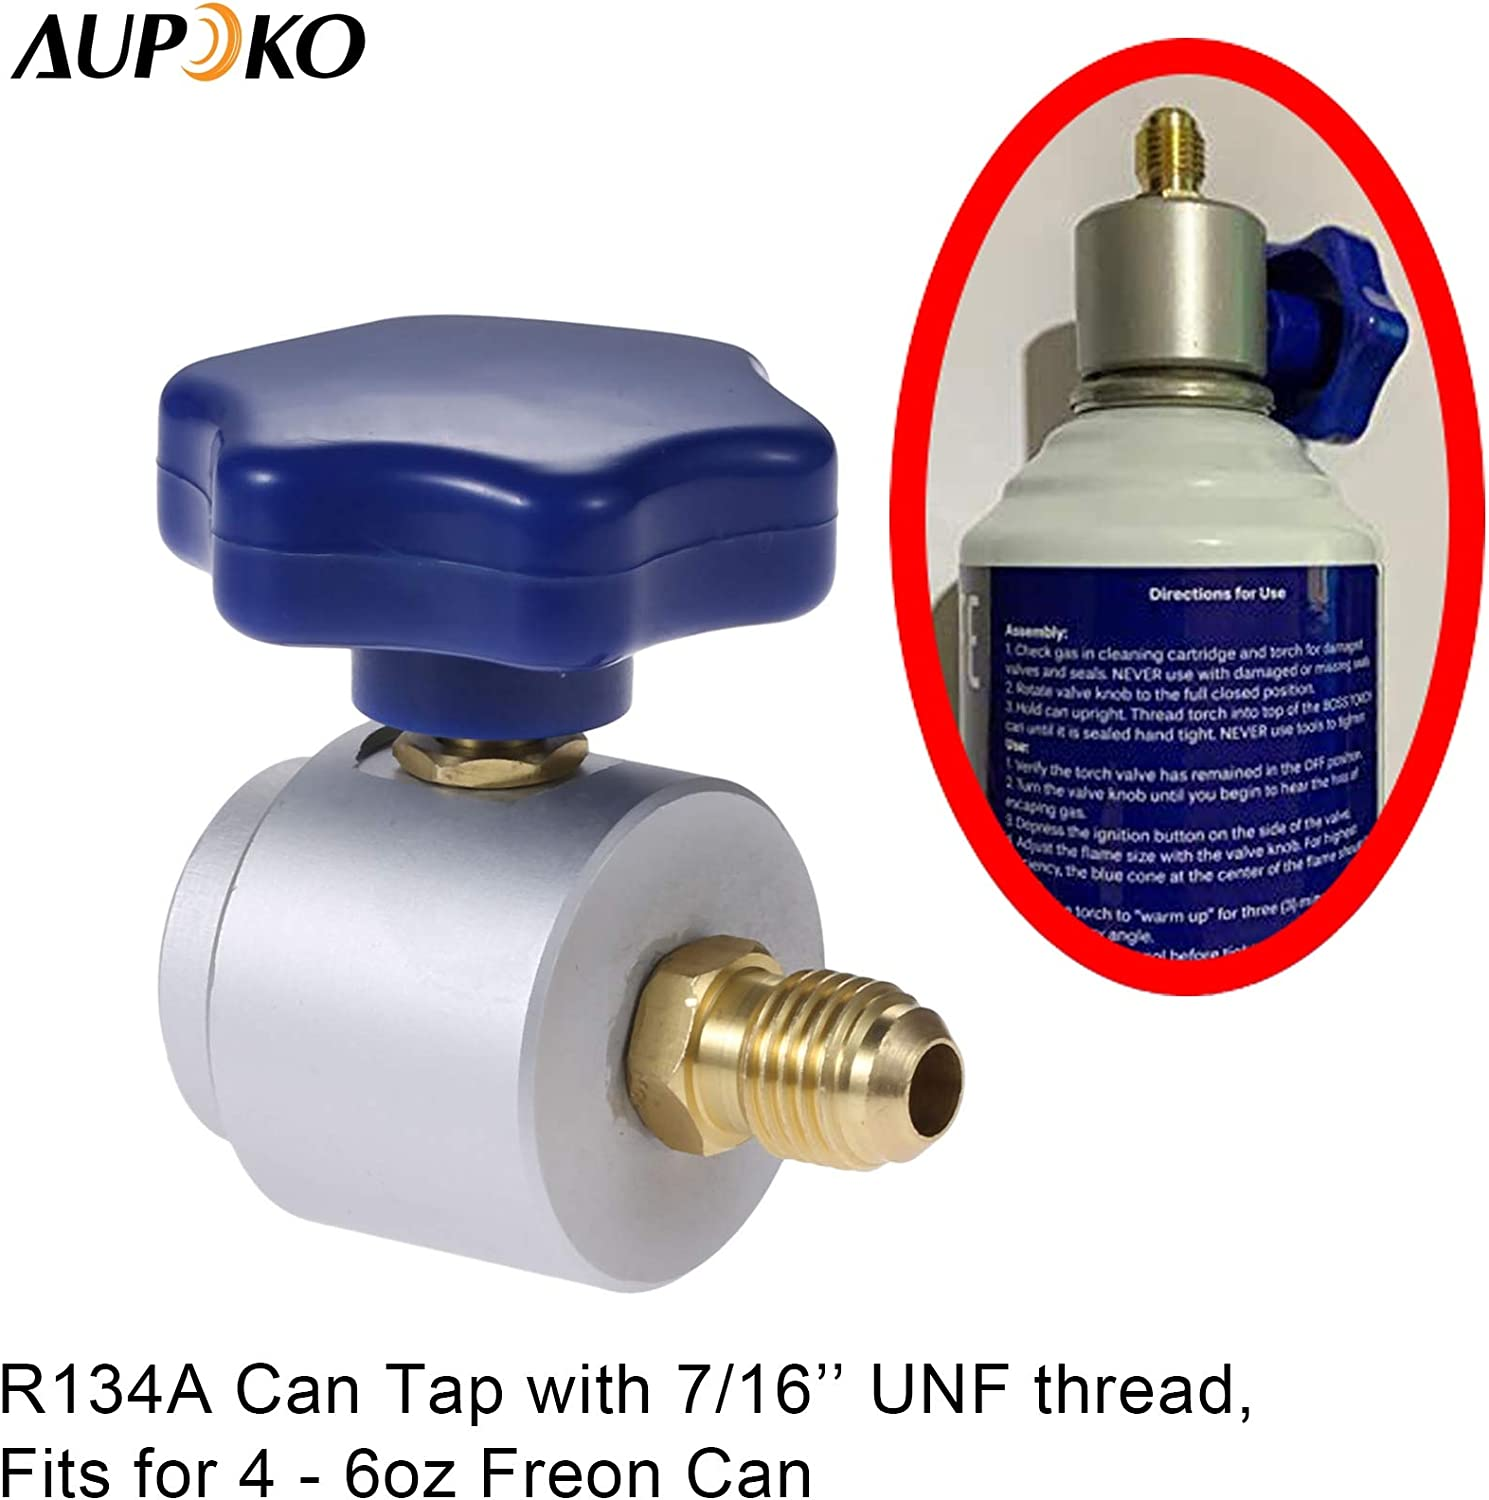 R-134A Self-Sealing Can Fits for Automotive Air Conditioning Charging R12 R22 R134A Dispenser Valve AC Refrigerant Bottle Opener 1//4 SAE Male and 7//16-28UNF Female Thread